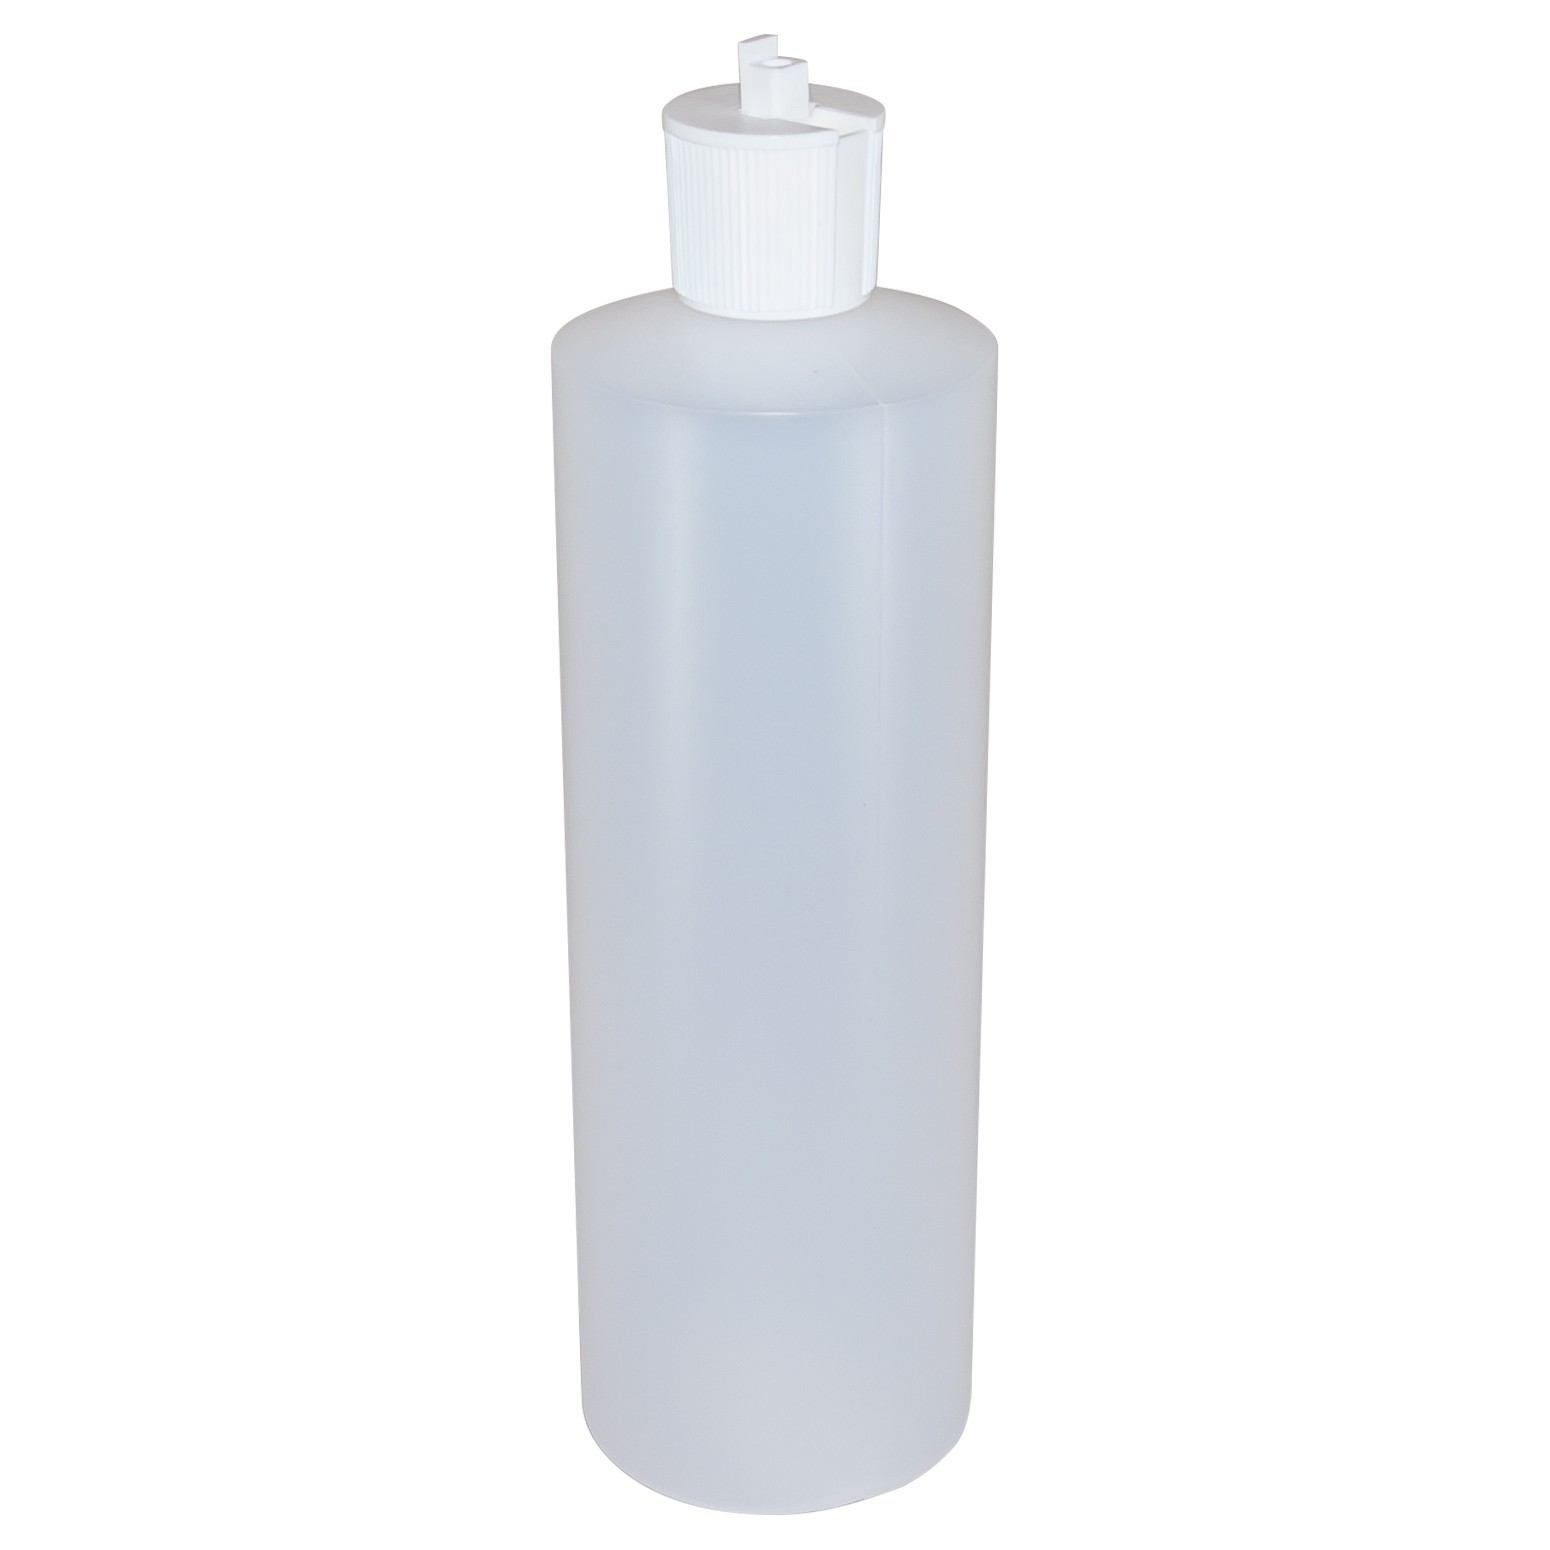 16oz Squeeze Bottle with Easy Flip Top